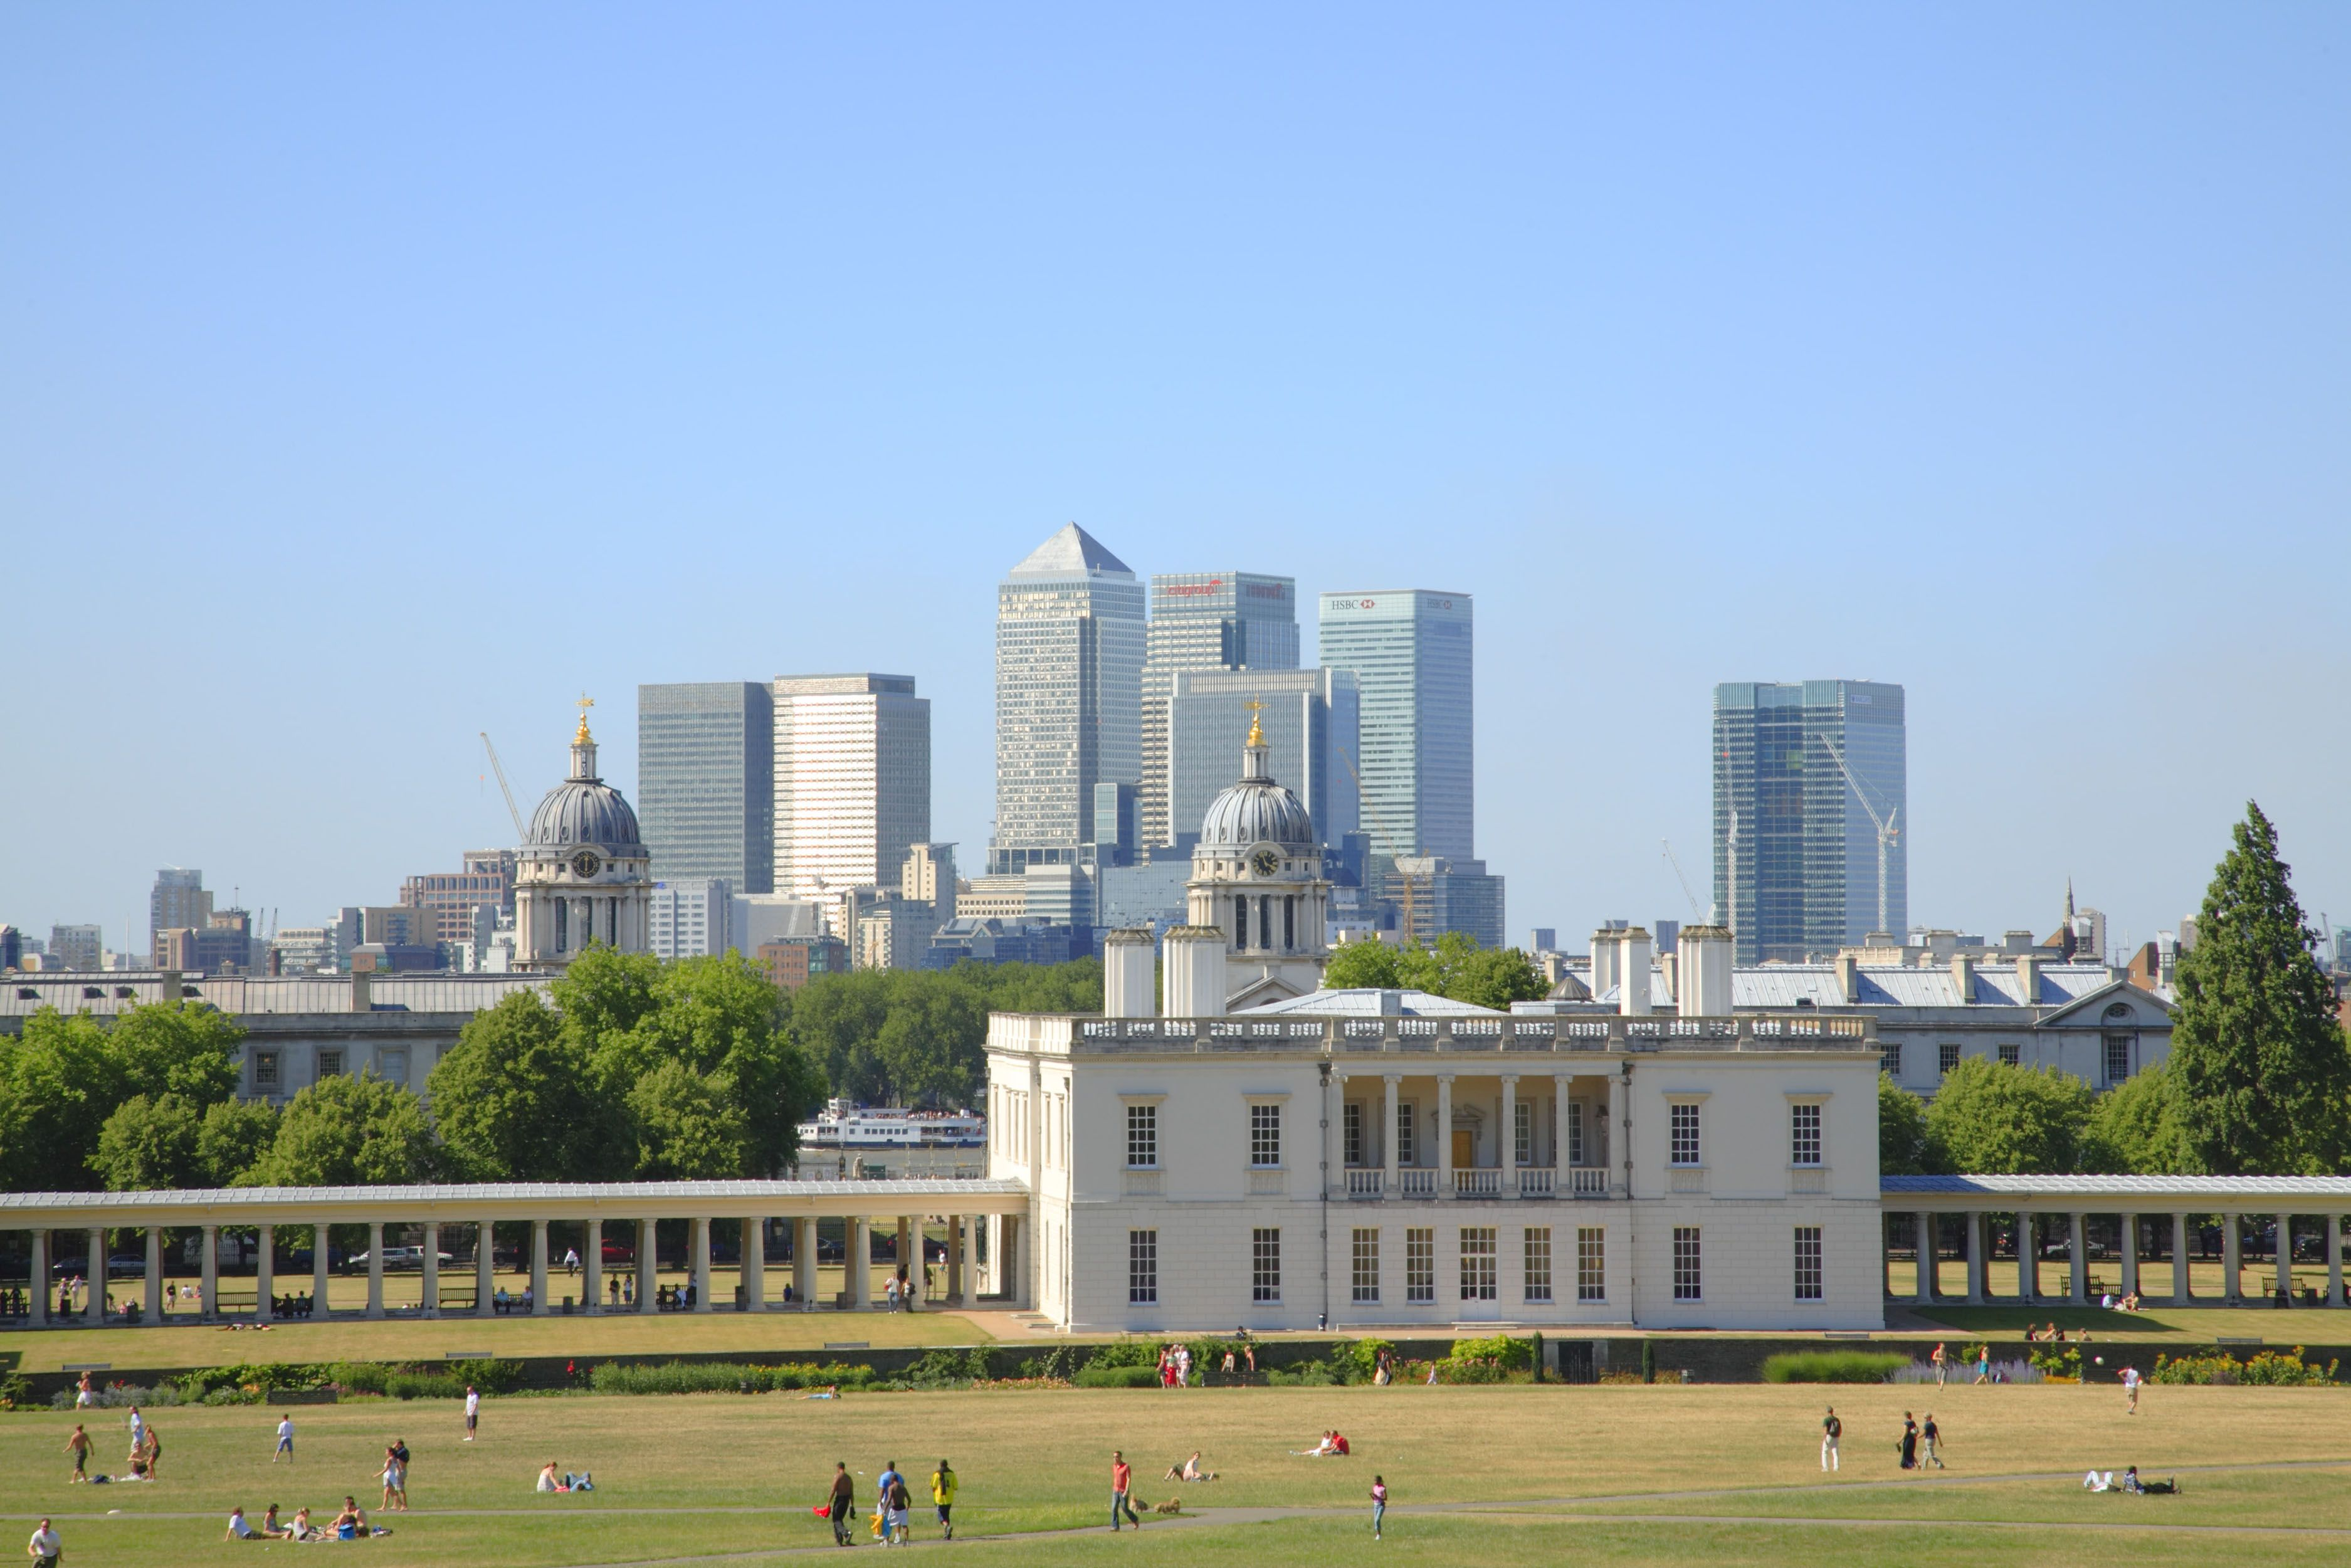 The view of Canary Wharf from Greenwich, London